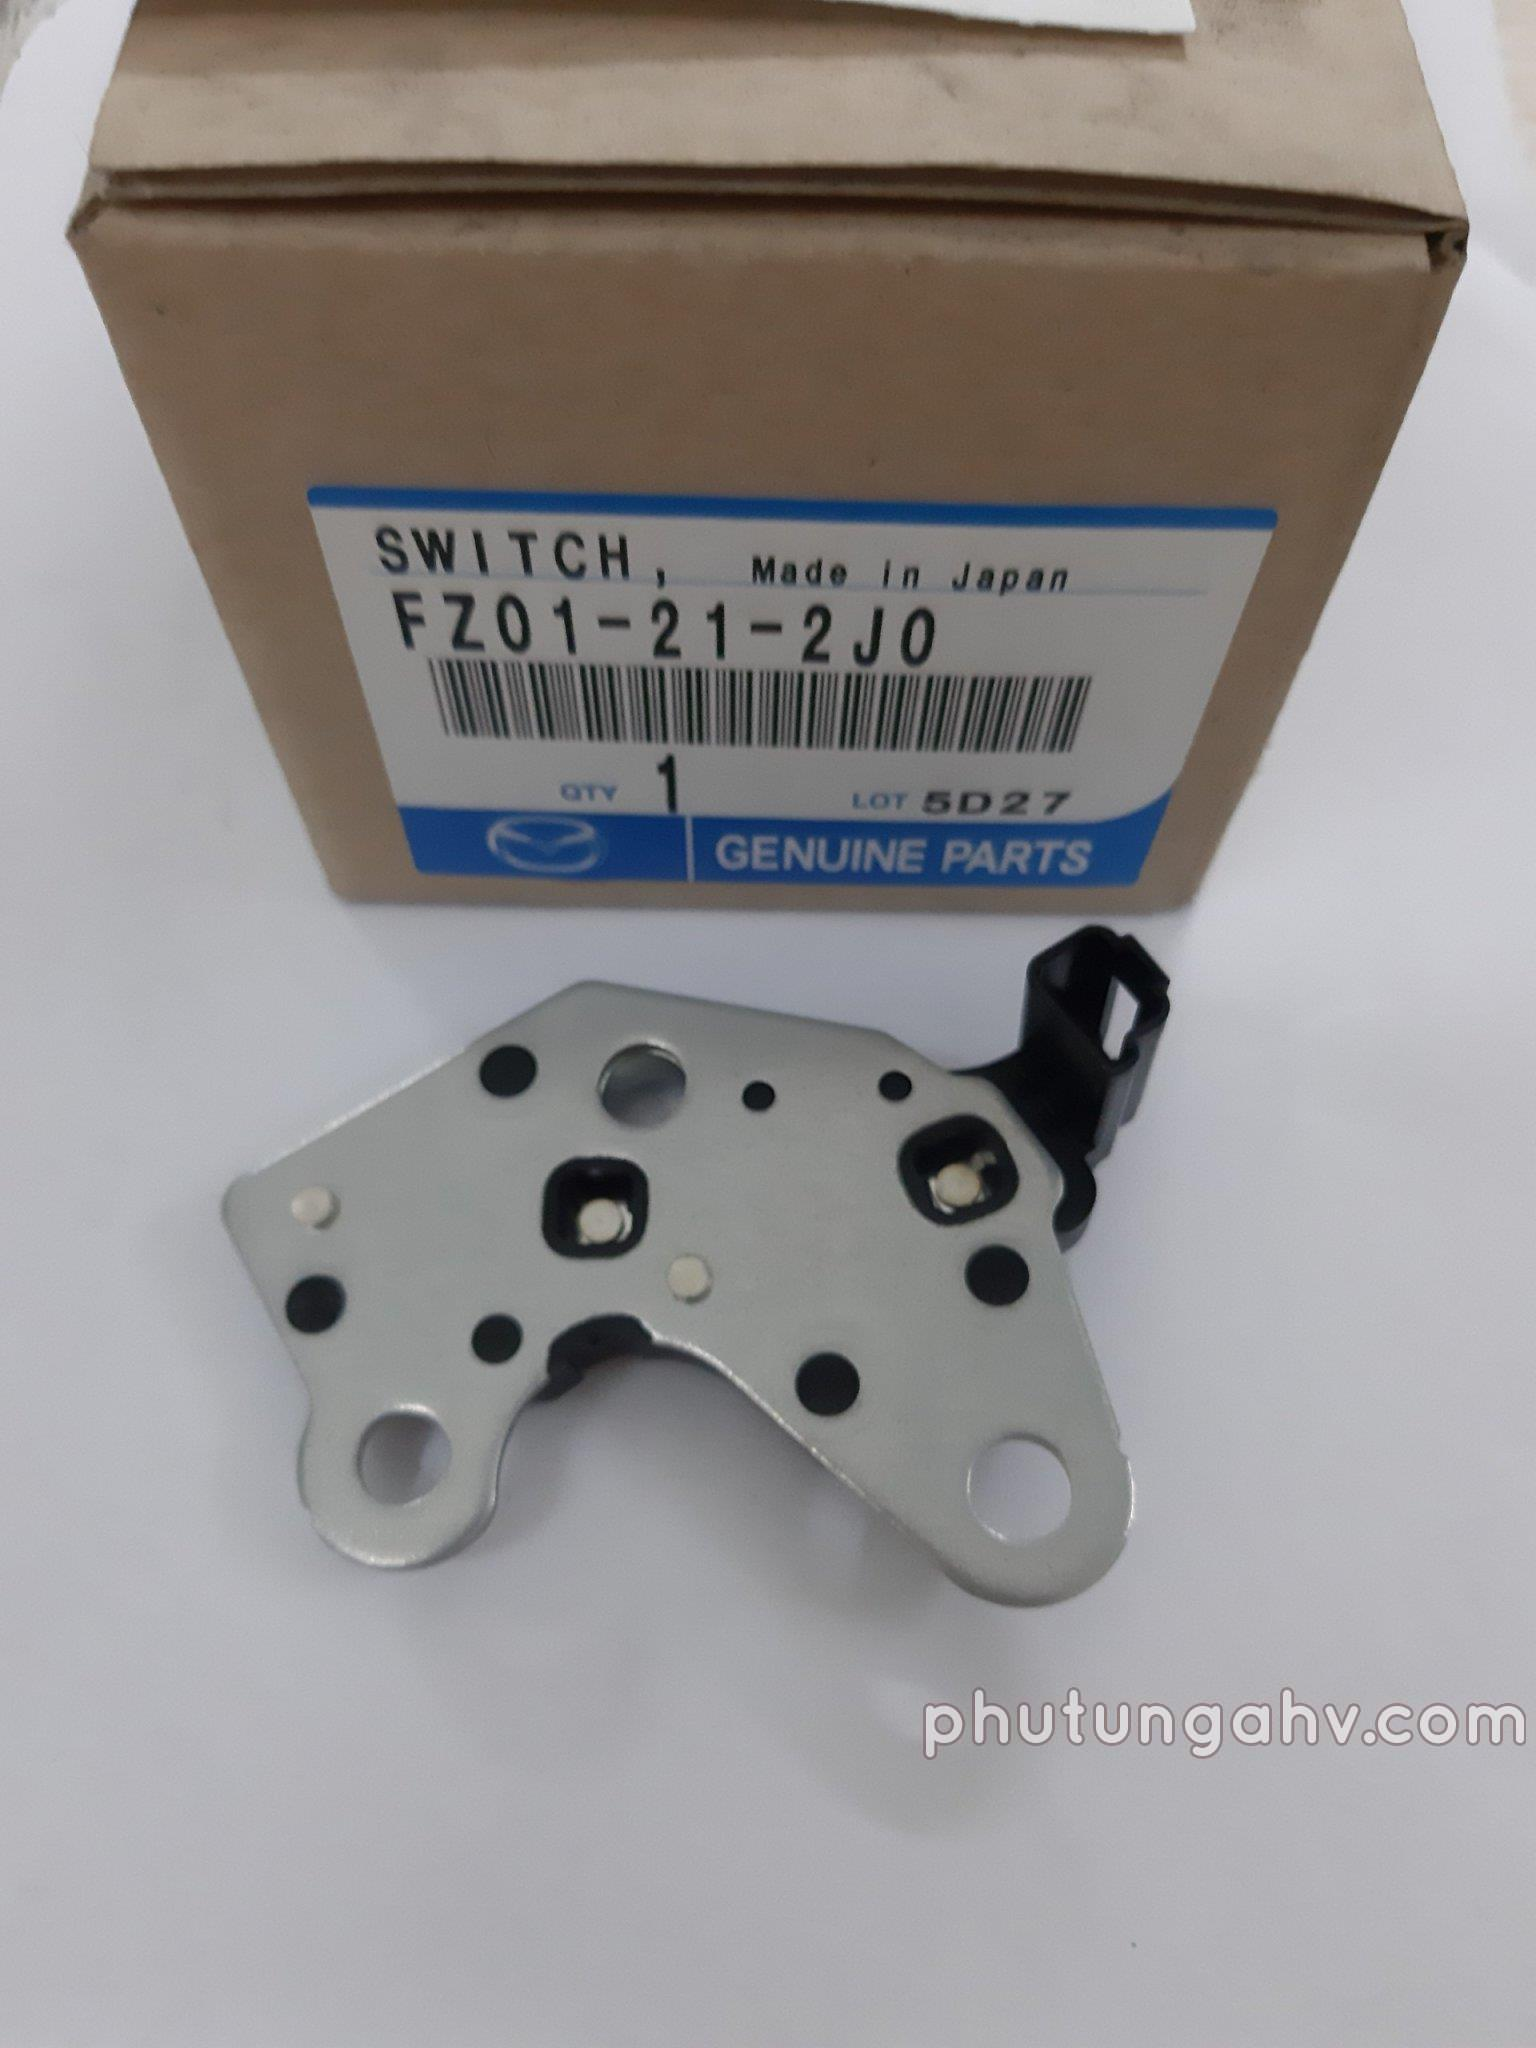 VAN HỘP SỐ	SWITCH'B',	MAZDA 3 All New